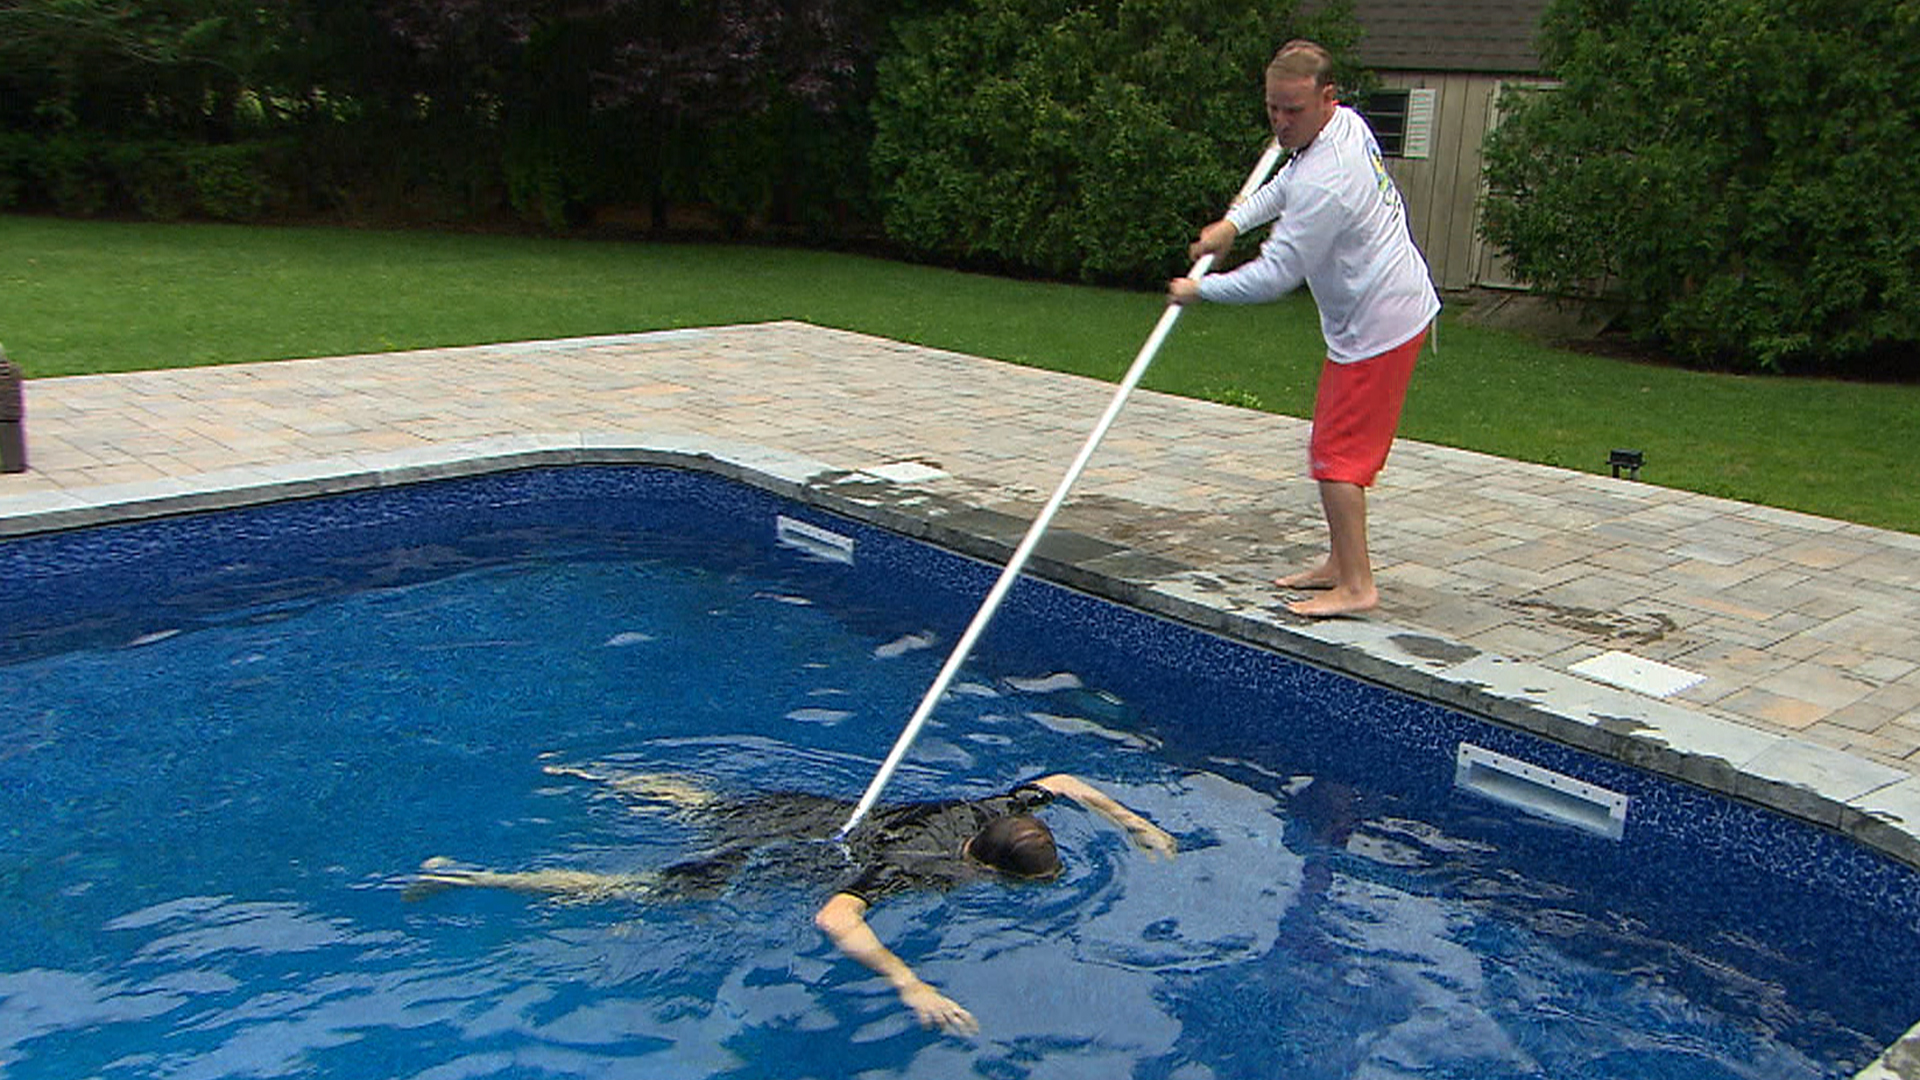 How to save the life of someone who's drowning - TODAY.com